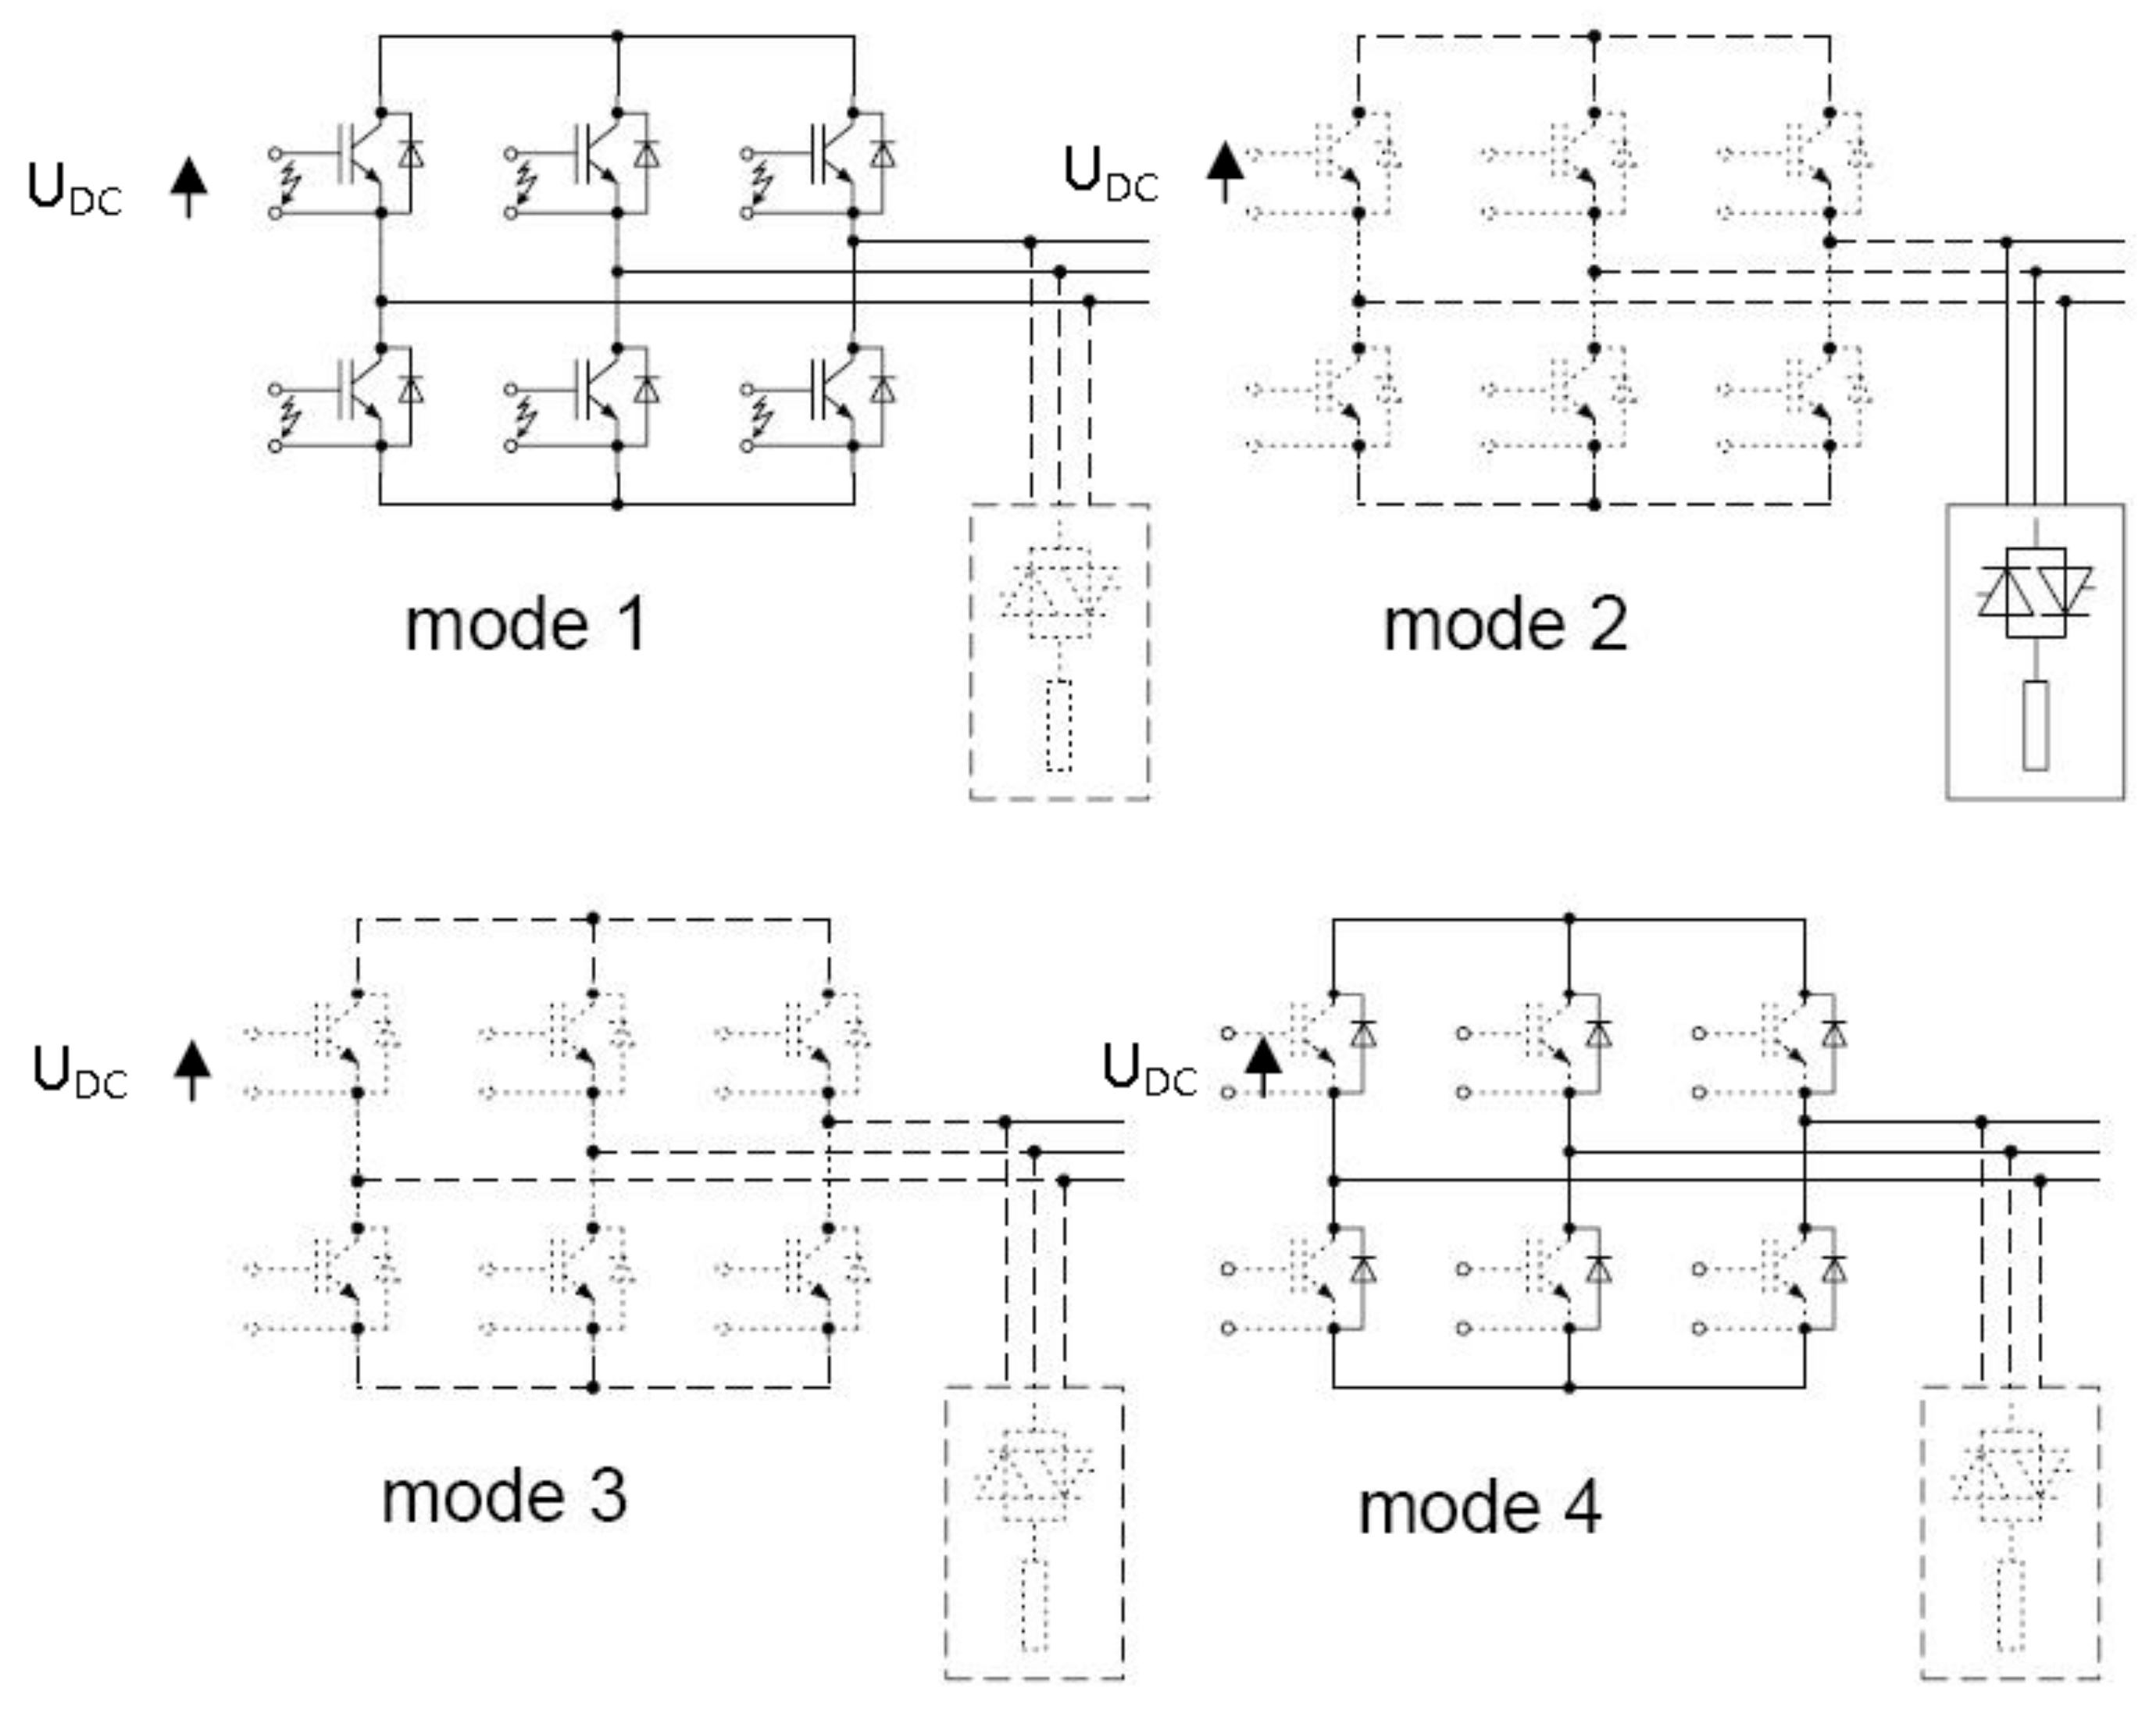 Crowbar Circuits On This Page Which Includes The Following